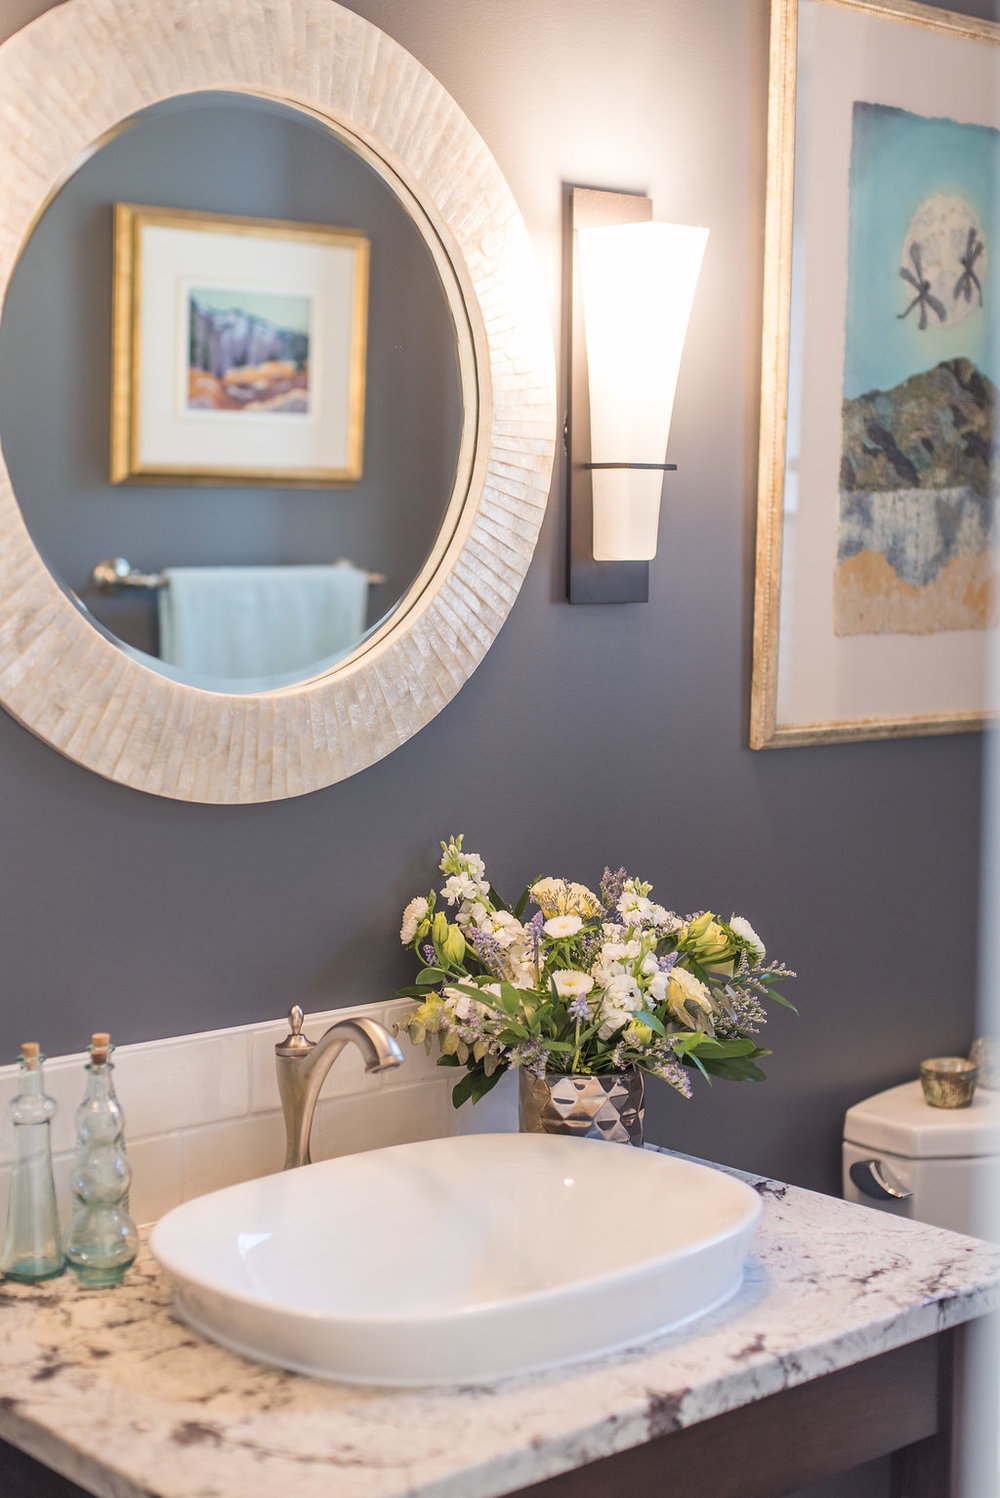 Powder Room with sconce lighting| Alaska White Granite| Benjamin Moore Trout Gray paint| Interior Designs By Adrienne| Cranbrook BC